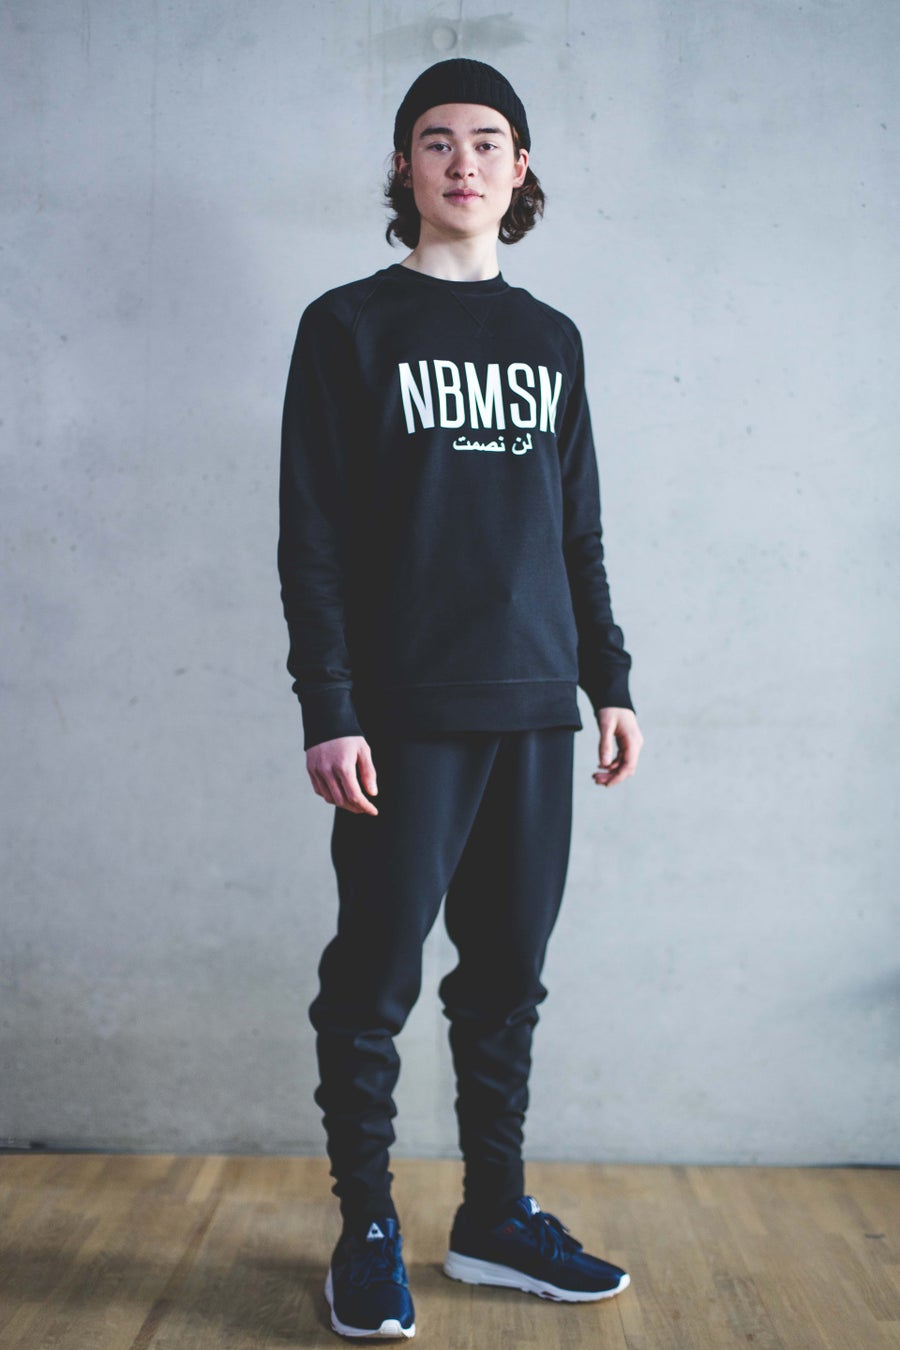 Image of NBMSM Sweatshirt